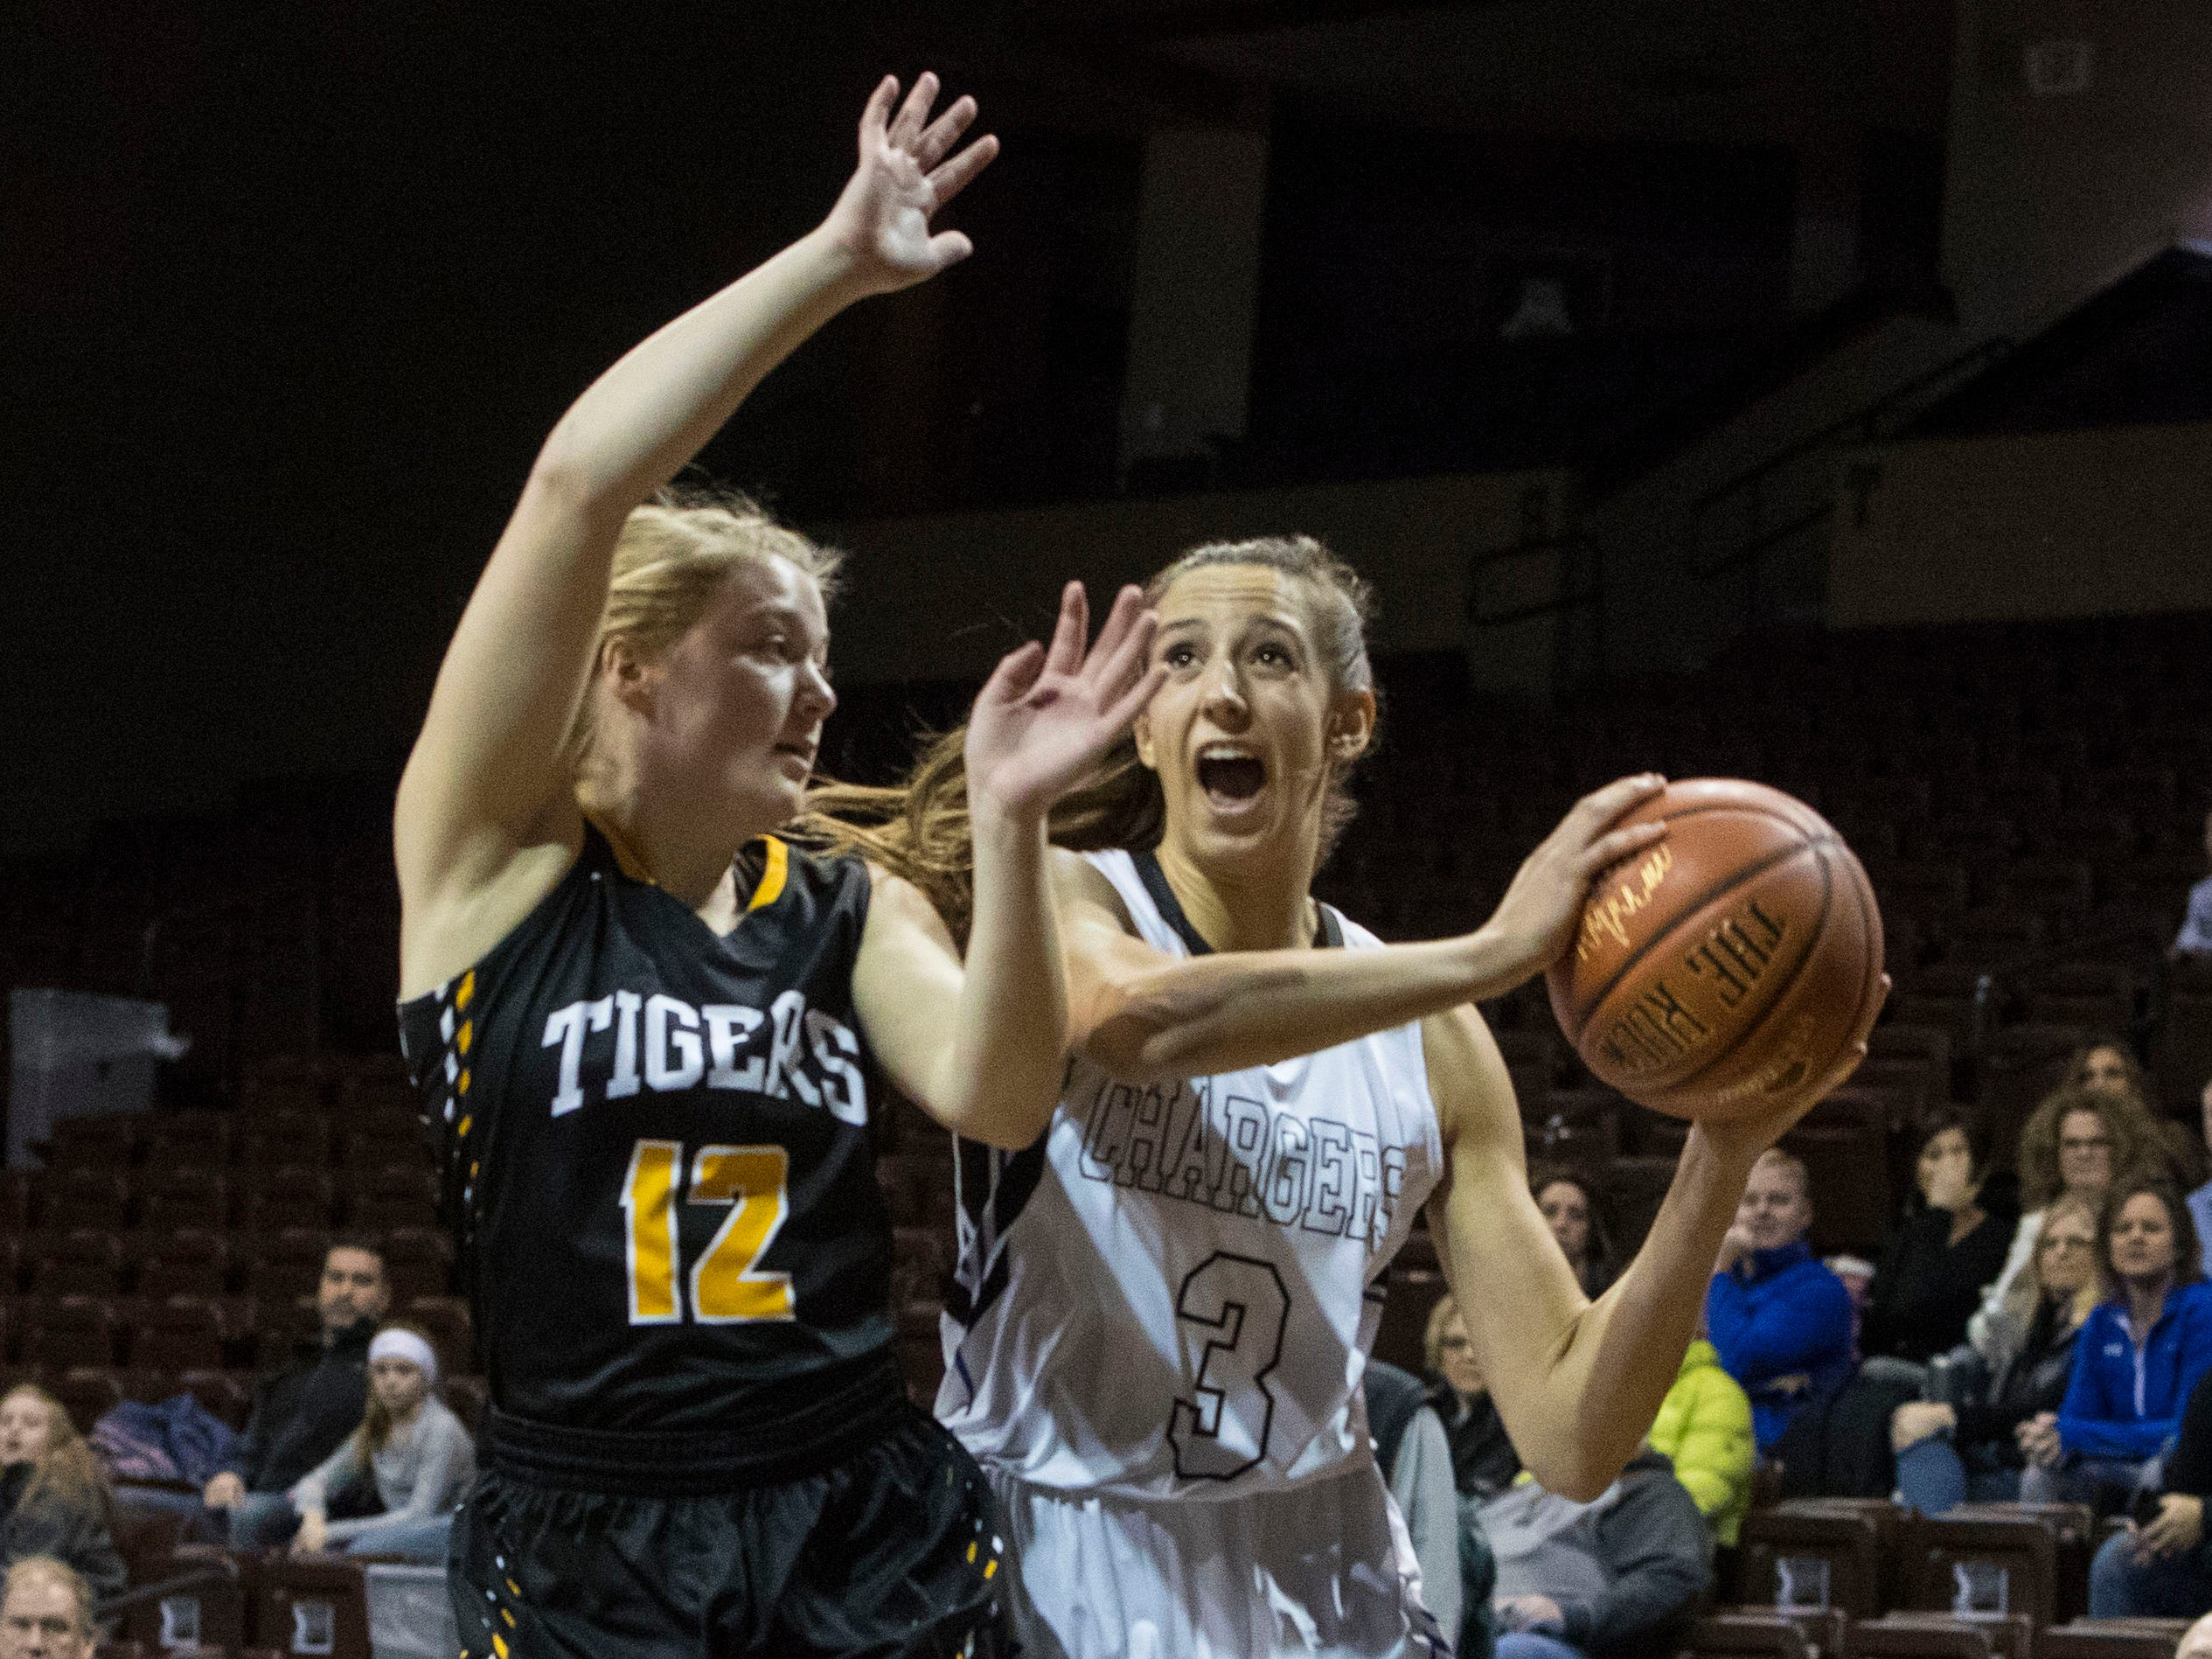 Sioux Falls Christian's Lexi Unruh (3) dribbles the ball past Hutchinson's Michaela Stamer (12) during the Hoop City Classic at the Sanford Pentagon in Sioux Falls, S.D., Saturday, Dec. 29, 2018.